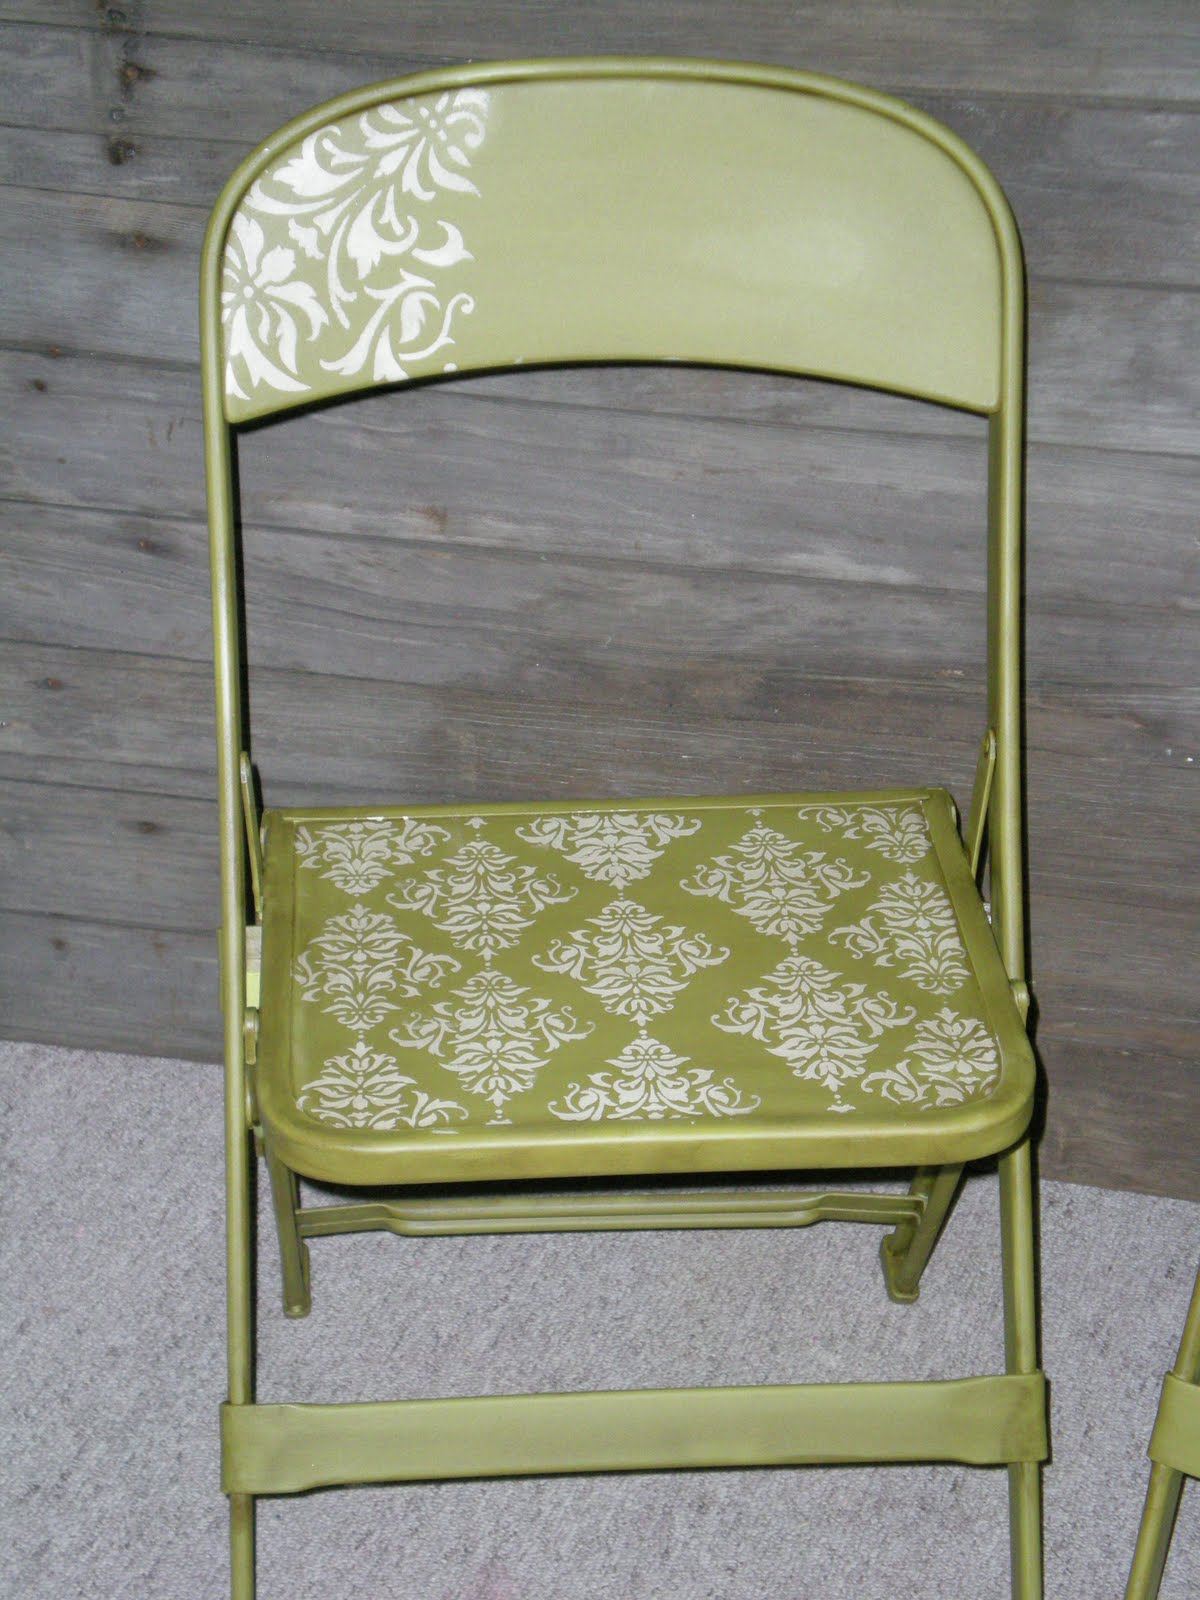 Folding Chair Upcycle Waterproof Covers For Recliners Jenny And Ashley 39s Redos Damask Chairs